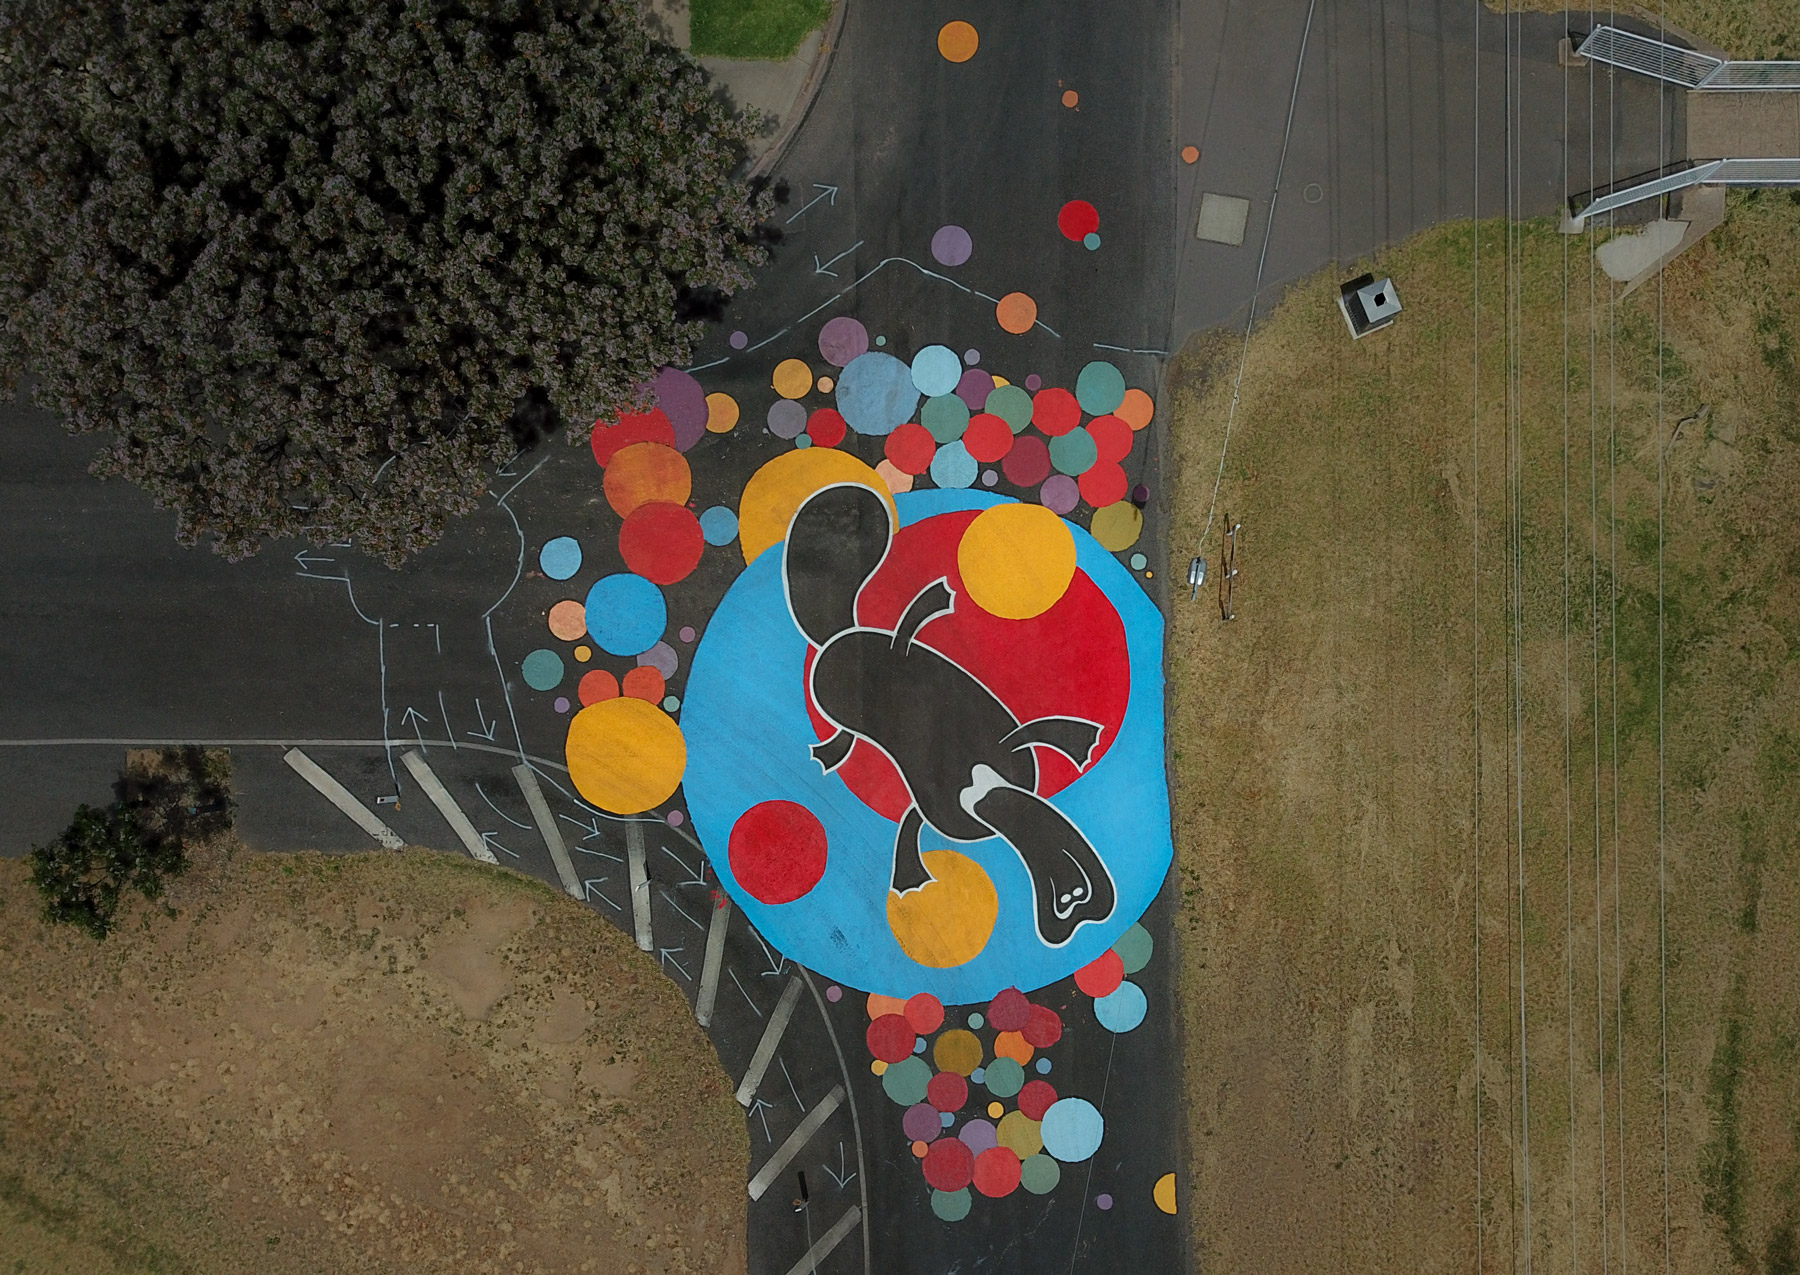 intersection-road-painting-mural-cycling-safe-bendigo-victoria-australia